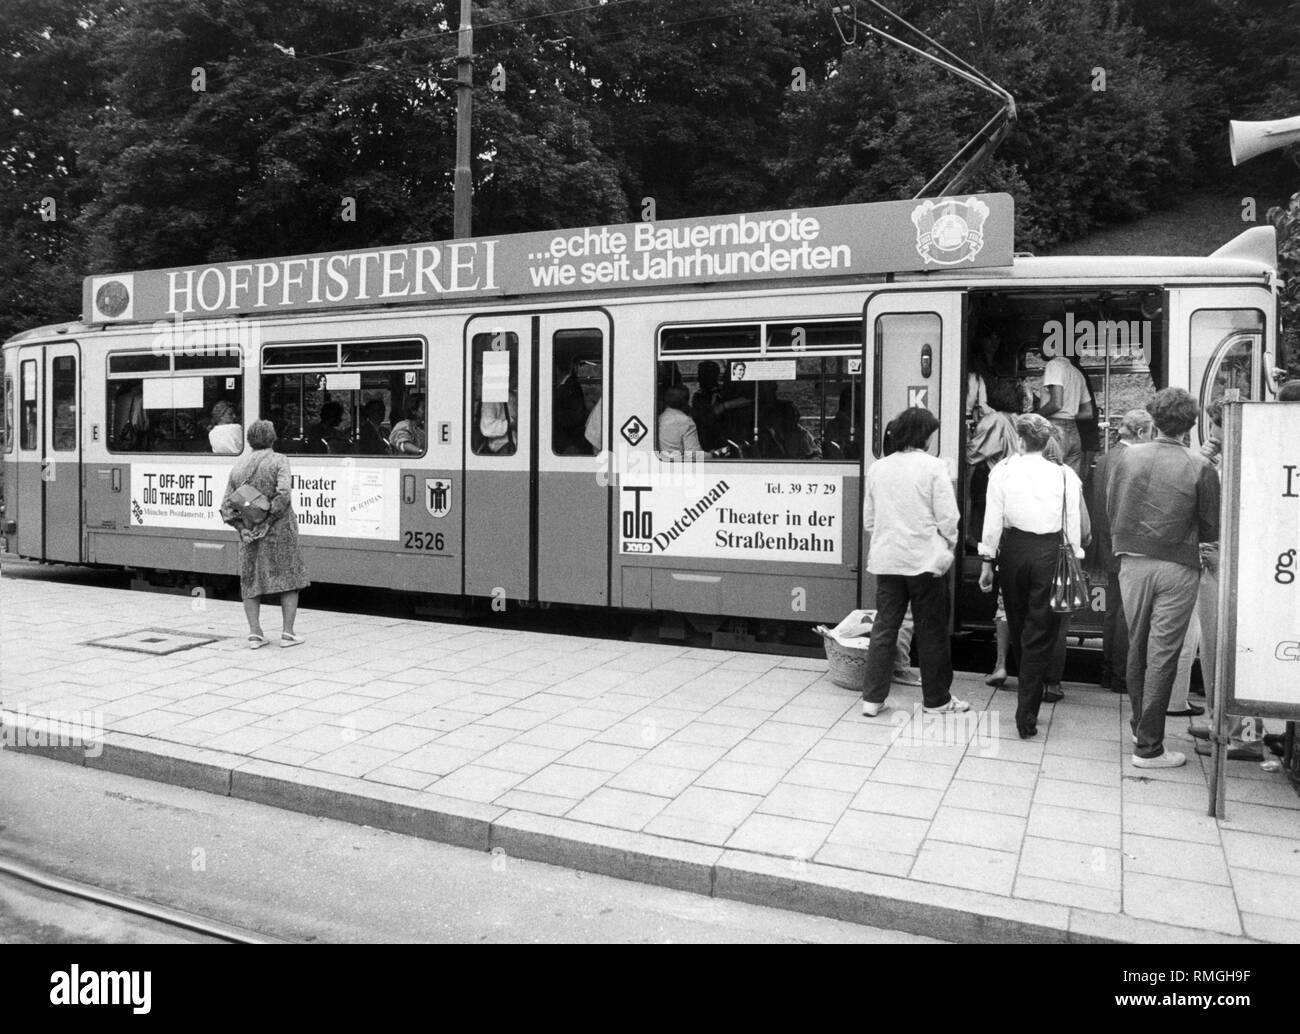 The play 'Dutchman' by LeRoi Jones is performed in the tram by the actors of the Off-Off-Theater in August and September 1986. - Stock Image